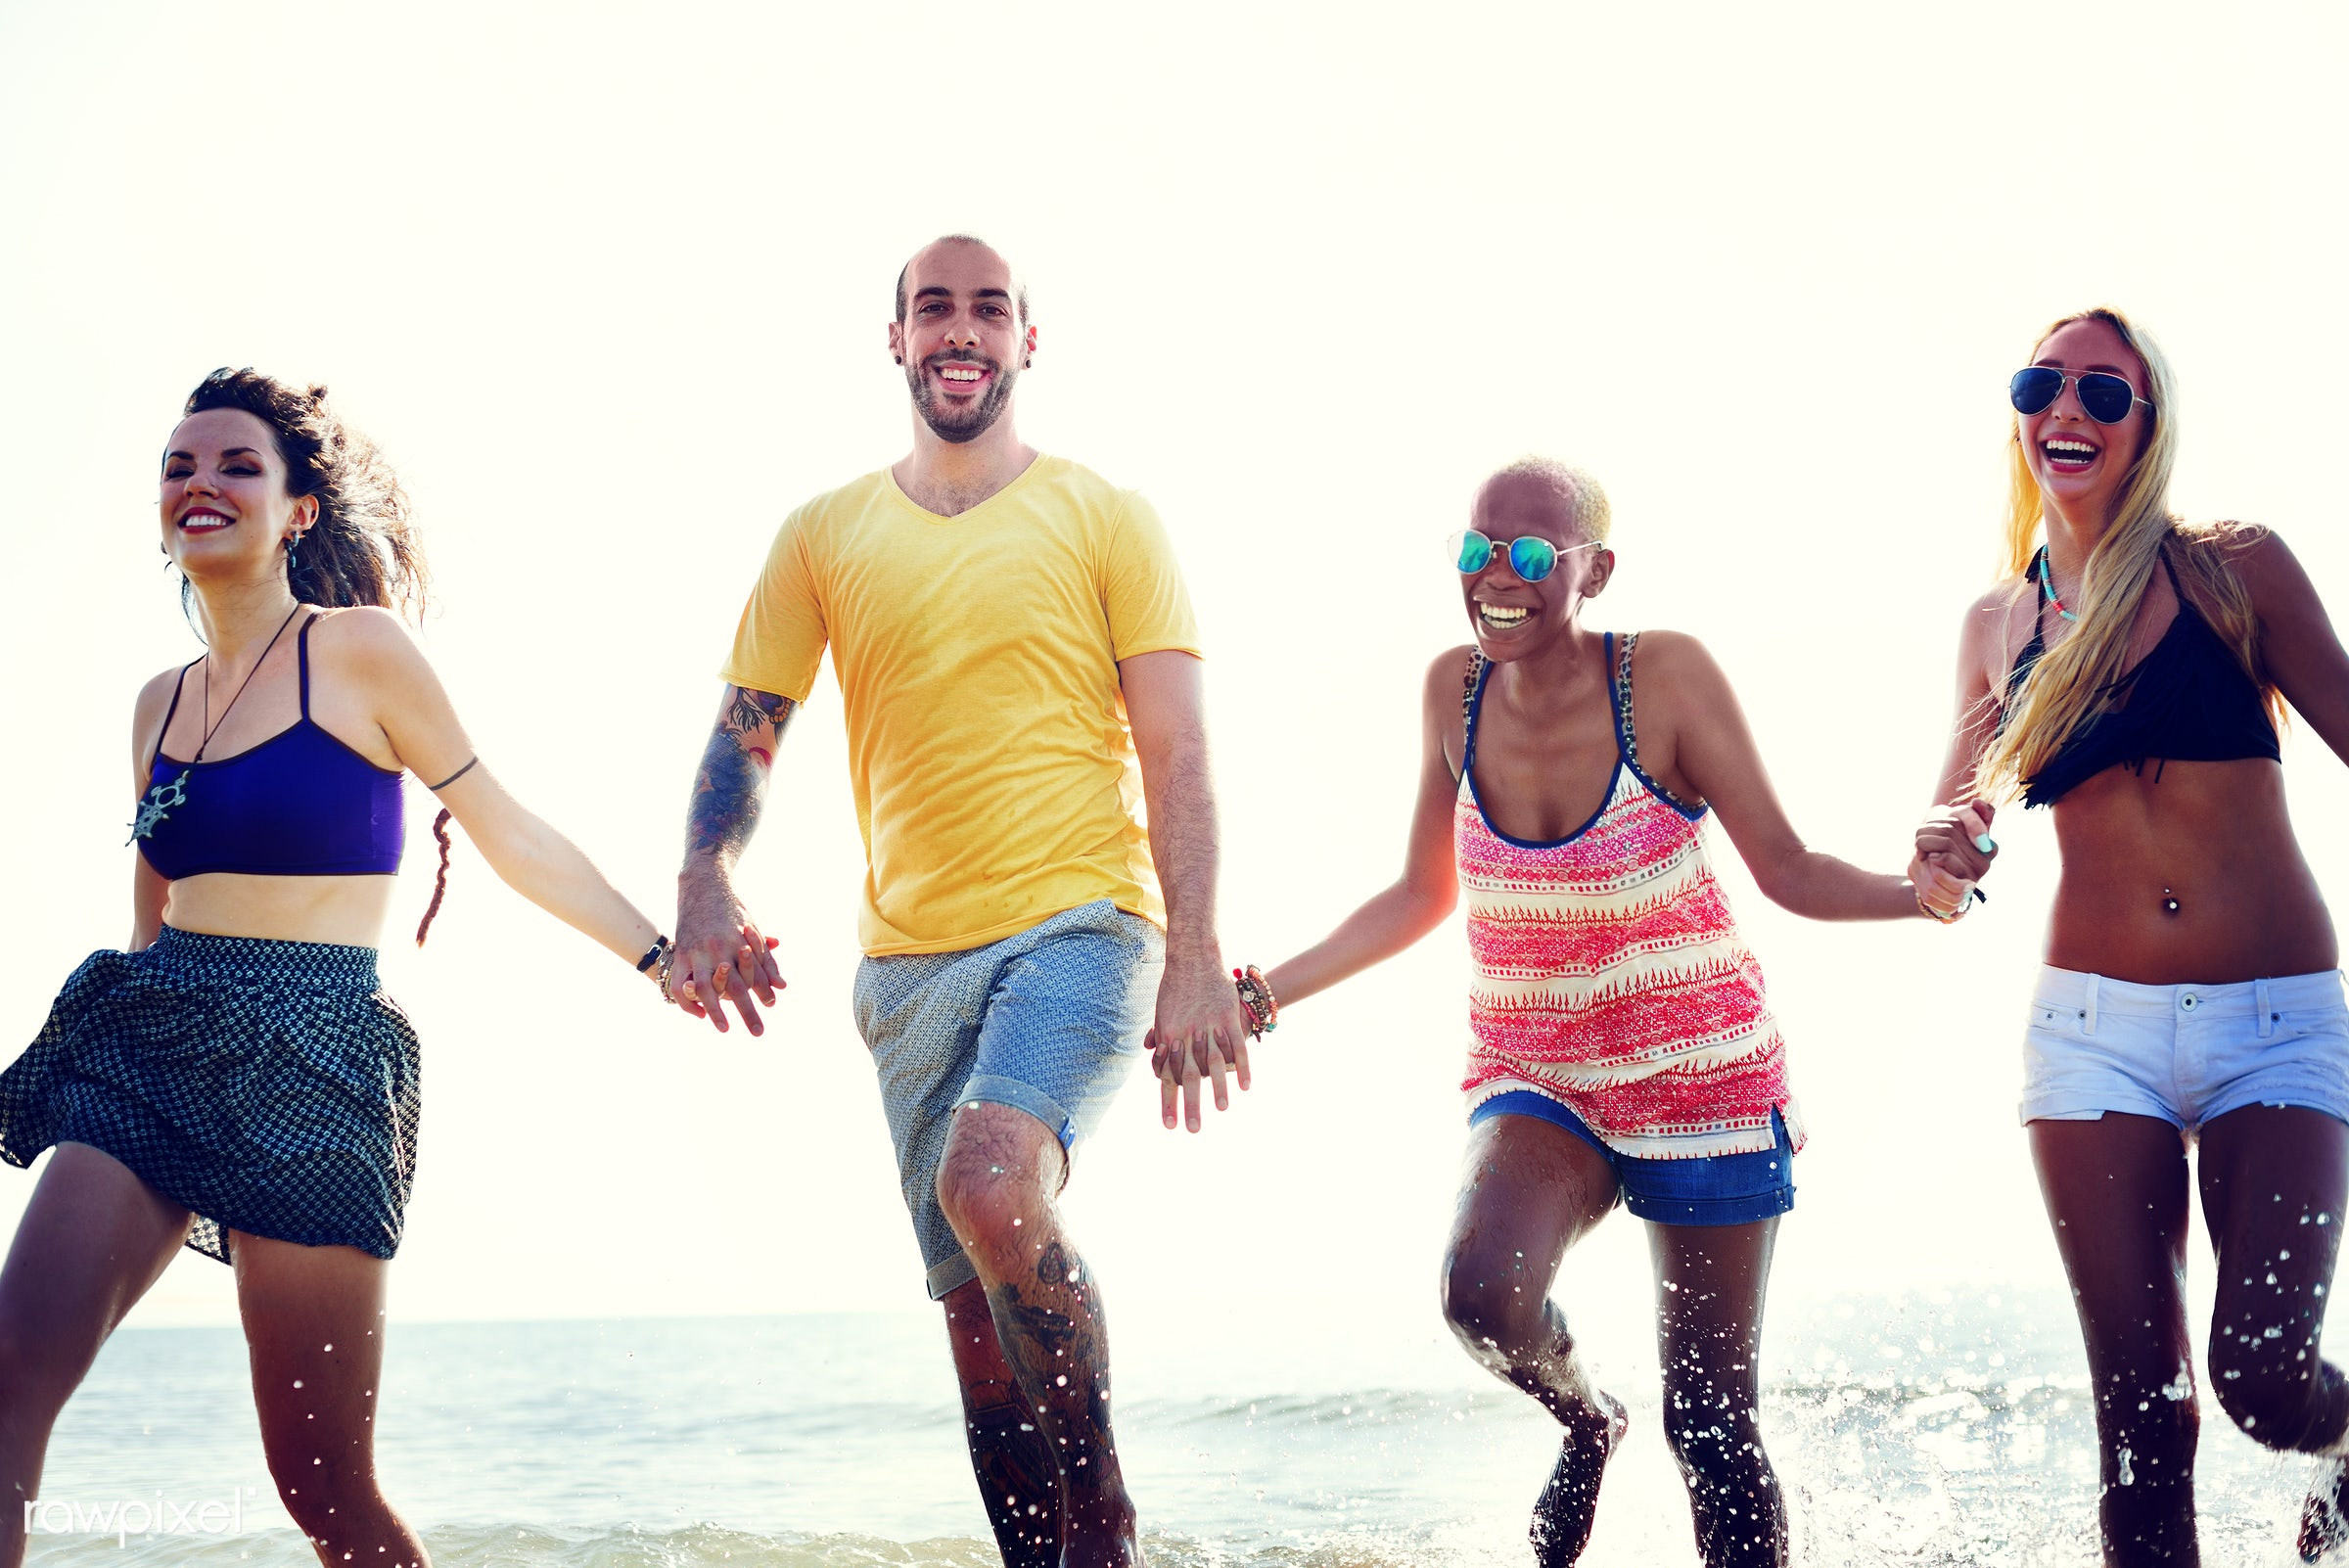 action, african descent, beach, bonding, cheerful, colorful, day, diverse, ecstatic, energy, enjoying, ethnicity, fashion,...